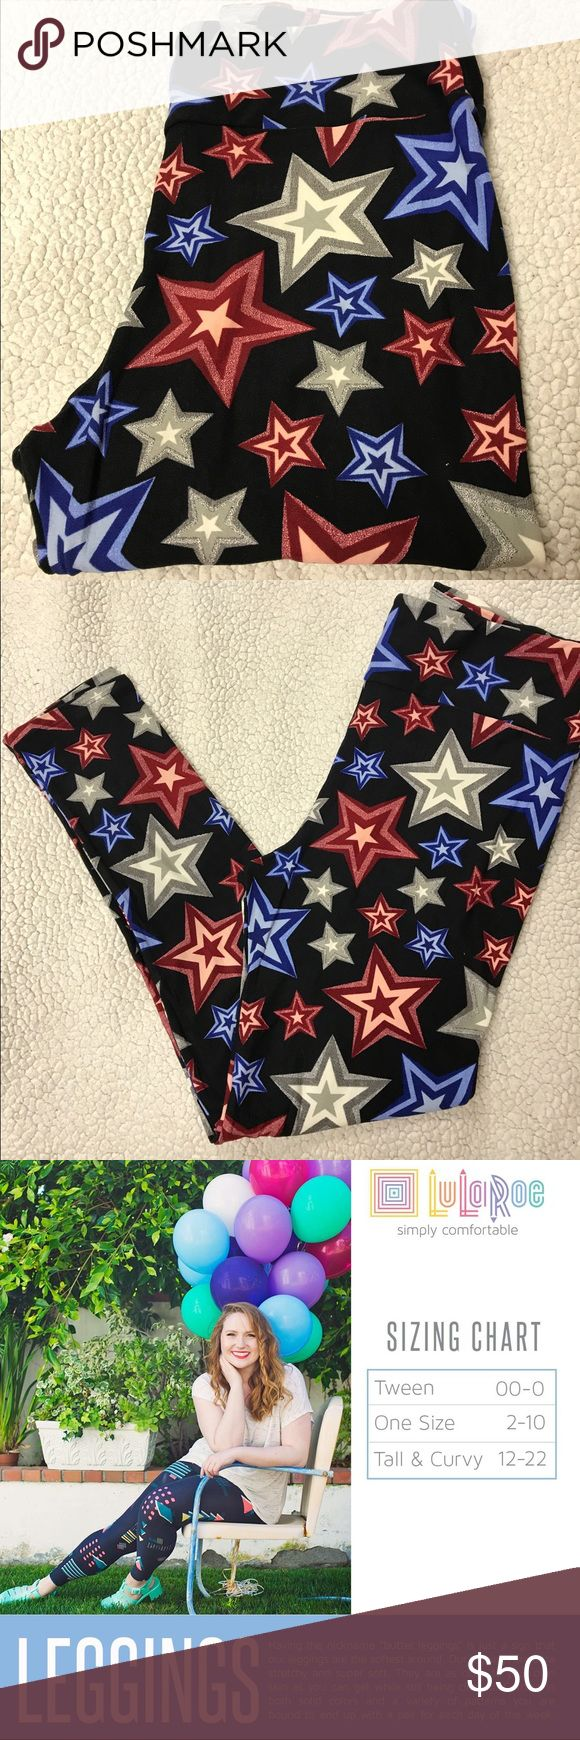 LuLaRoe Americana Collection TC Star Leggings TC (Tall & Curvy, don't worry you don't have to be tall & curvy, either one works. )Fits sizes 12-22 super soft & smooth. These are a limited edition from LuLaRoe Americana 2017 Collection! Which means, very hard to find & extremely limited print. Plz no pricing comments, but feel free to submit offers.   I LOVE OFFERS! BUNDLE & SAVE.         ❌TRADES LuLaRoe Pants Leggings